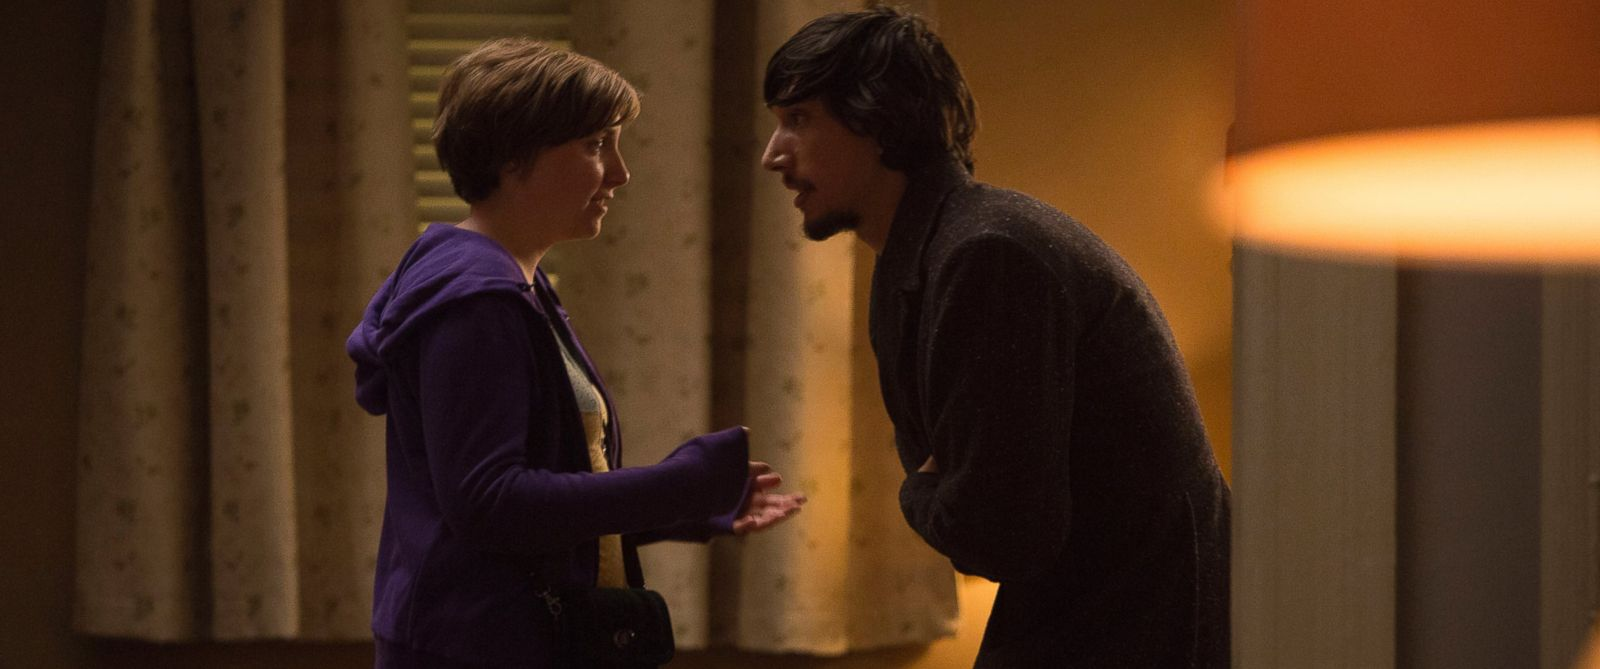 PHOTO: Lena Dunhams character Hannah on HBOs Girls argues with her boyfriend Adam (played by Adam Driver).